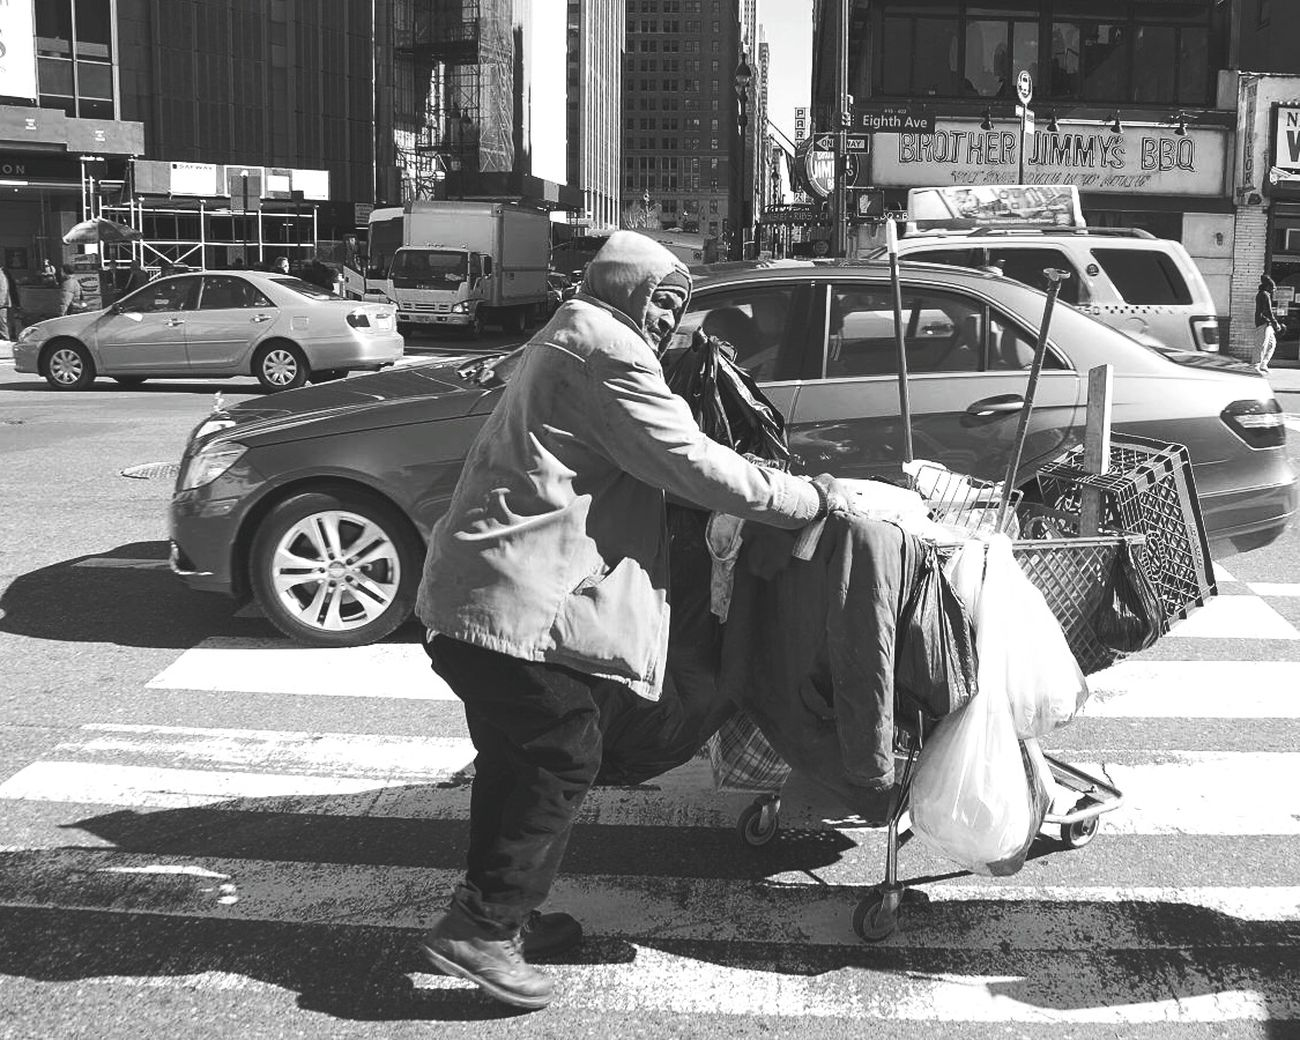 New York Blackandwhite Rich VS Poor Big Apple Hardlife Big City Life Black Man EyeEm City Shots